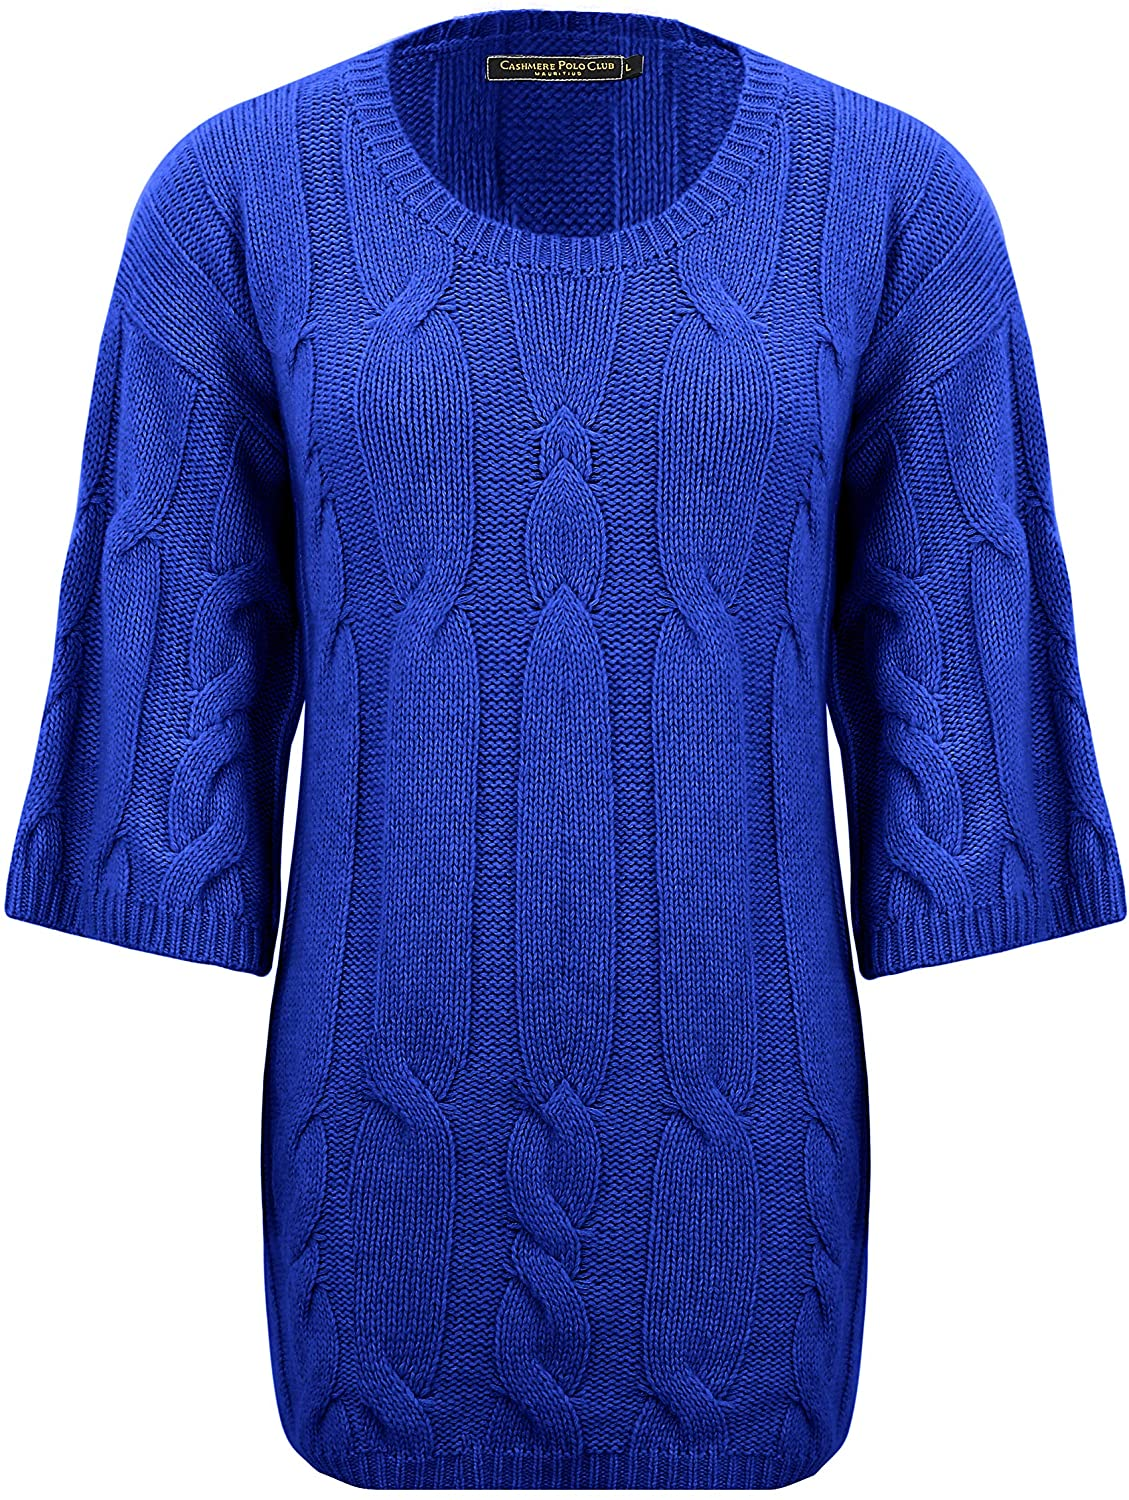 Cashmere Polo Club - Ivy-R - Ladies Round Half Sleeves Pullover